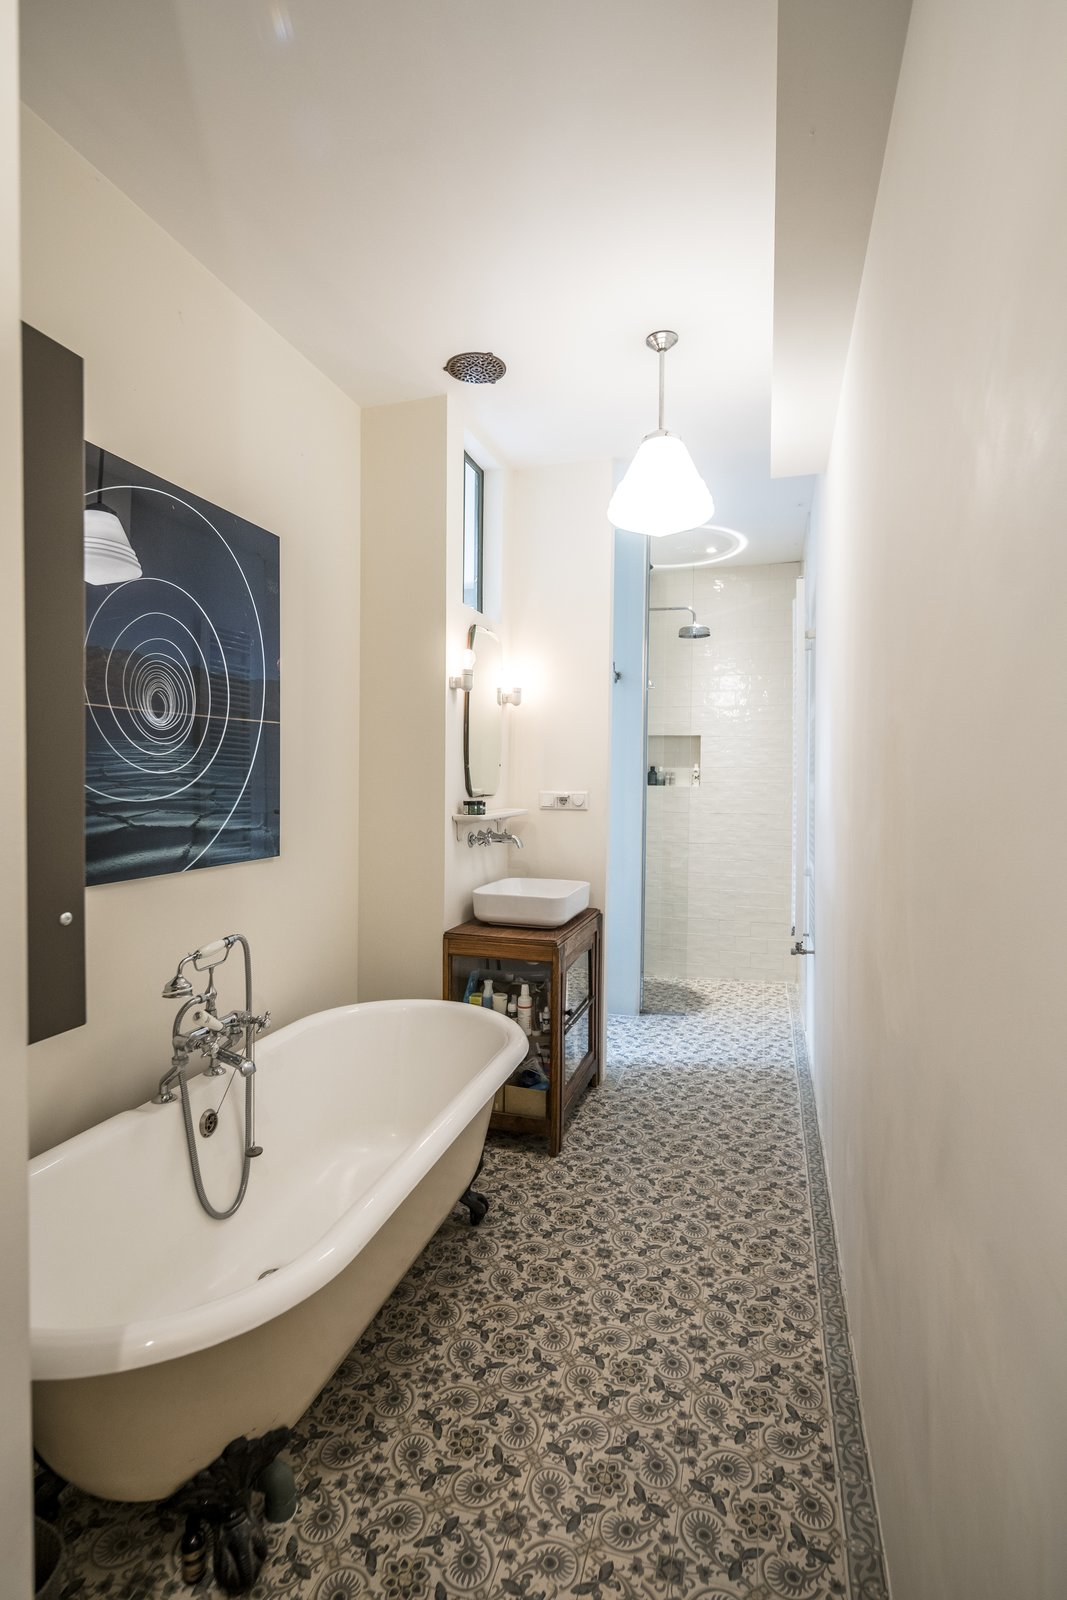 Bath Room, Ceramic Tile Floor, Open Shower, Wall Lighting, and Ceiling Lighting -  The Prinseneiland House